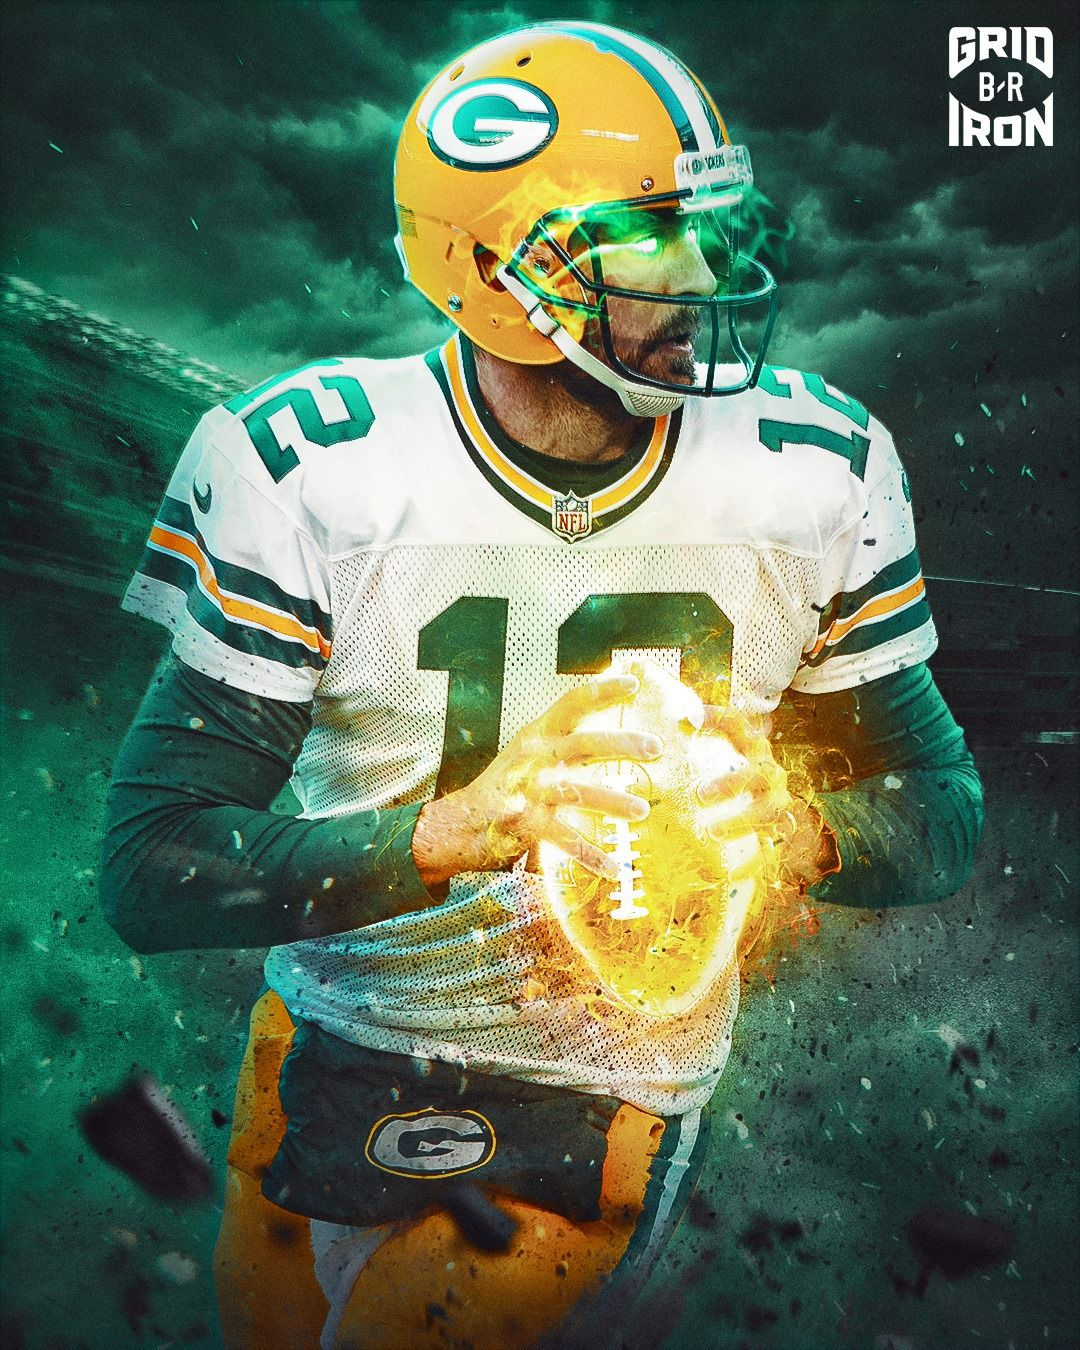 Pin By Chris Davis On Aaron Rodgers In 2020 Green Bay Packers Art Green Bay Packers Wallpaper Green Bay Packers Fans